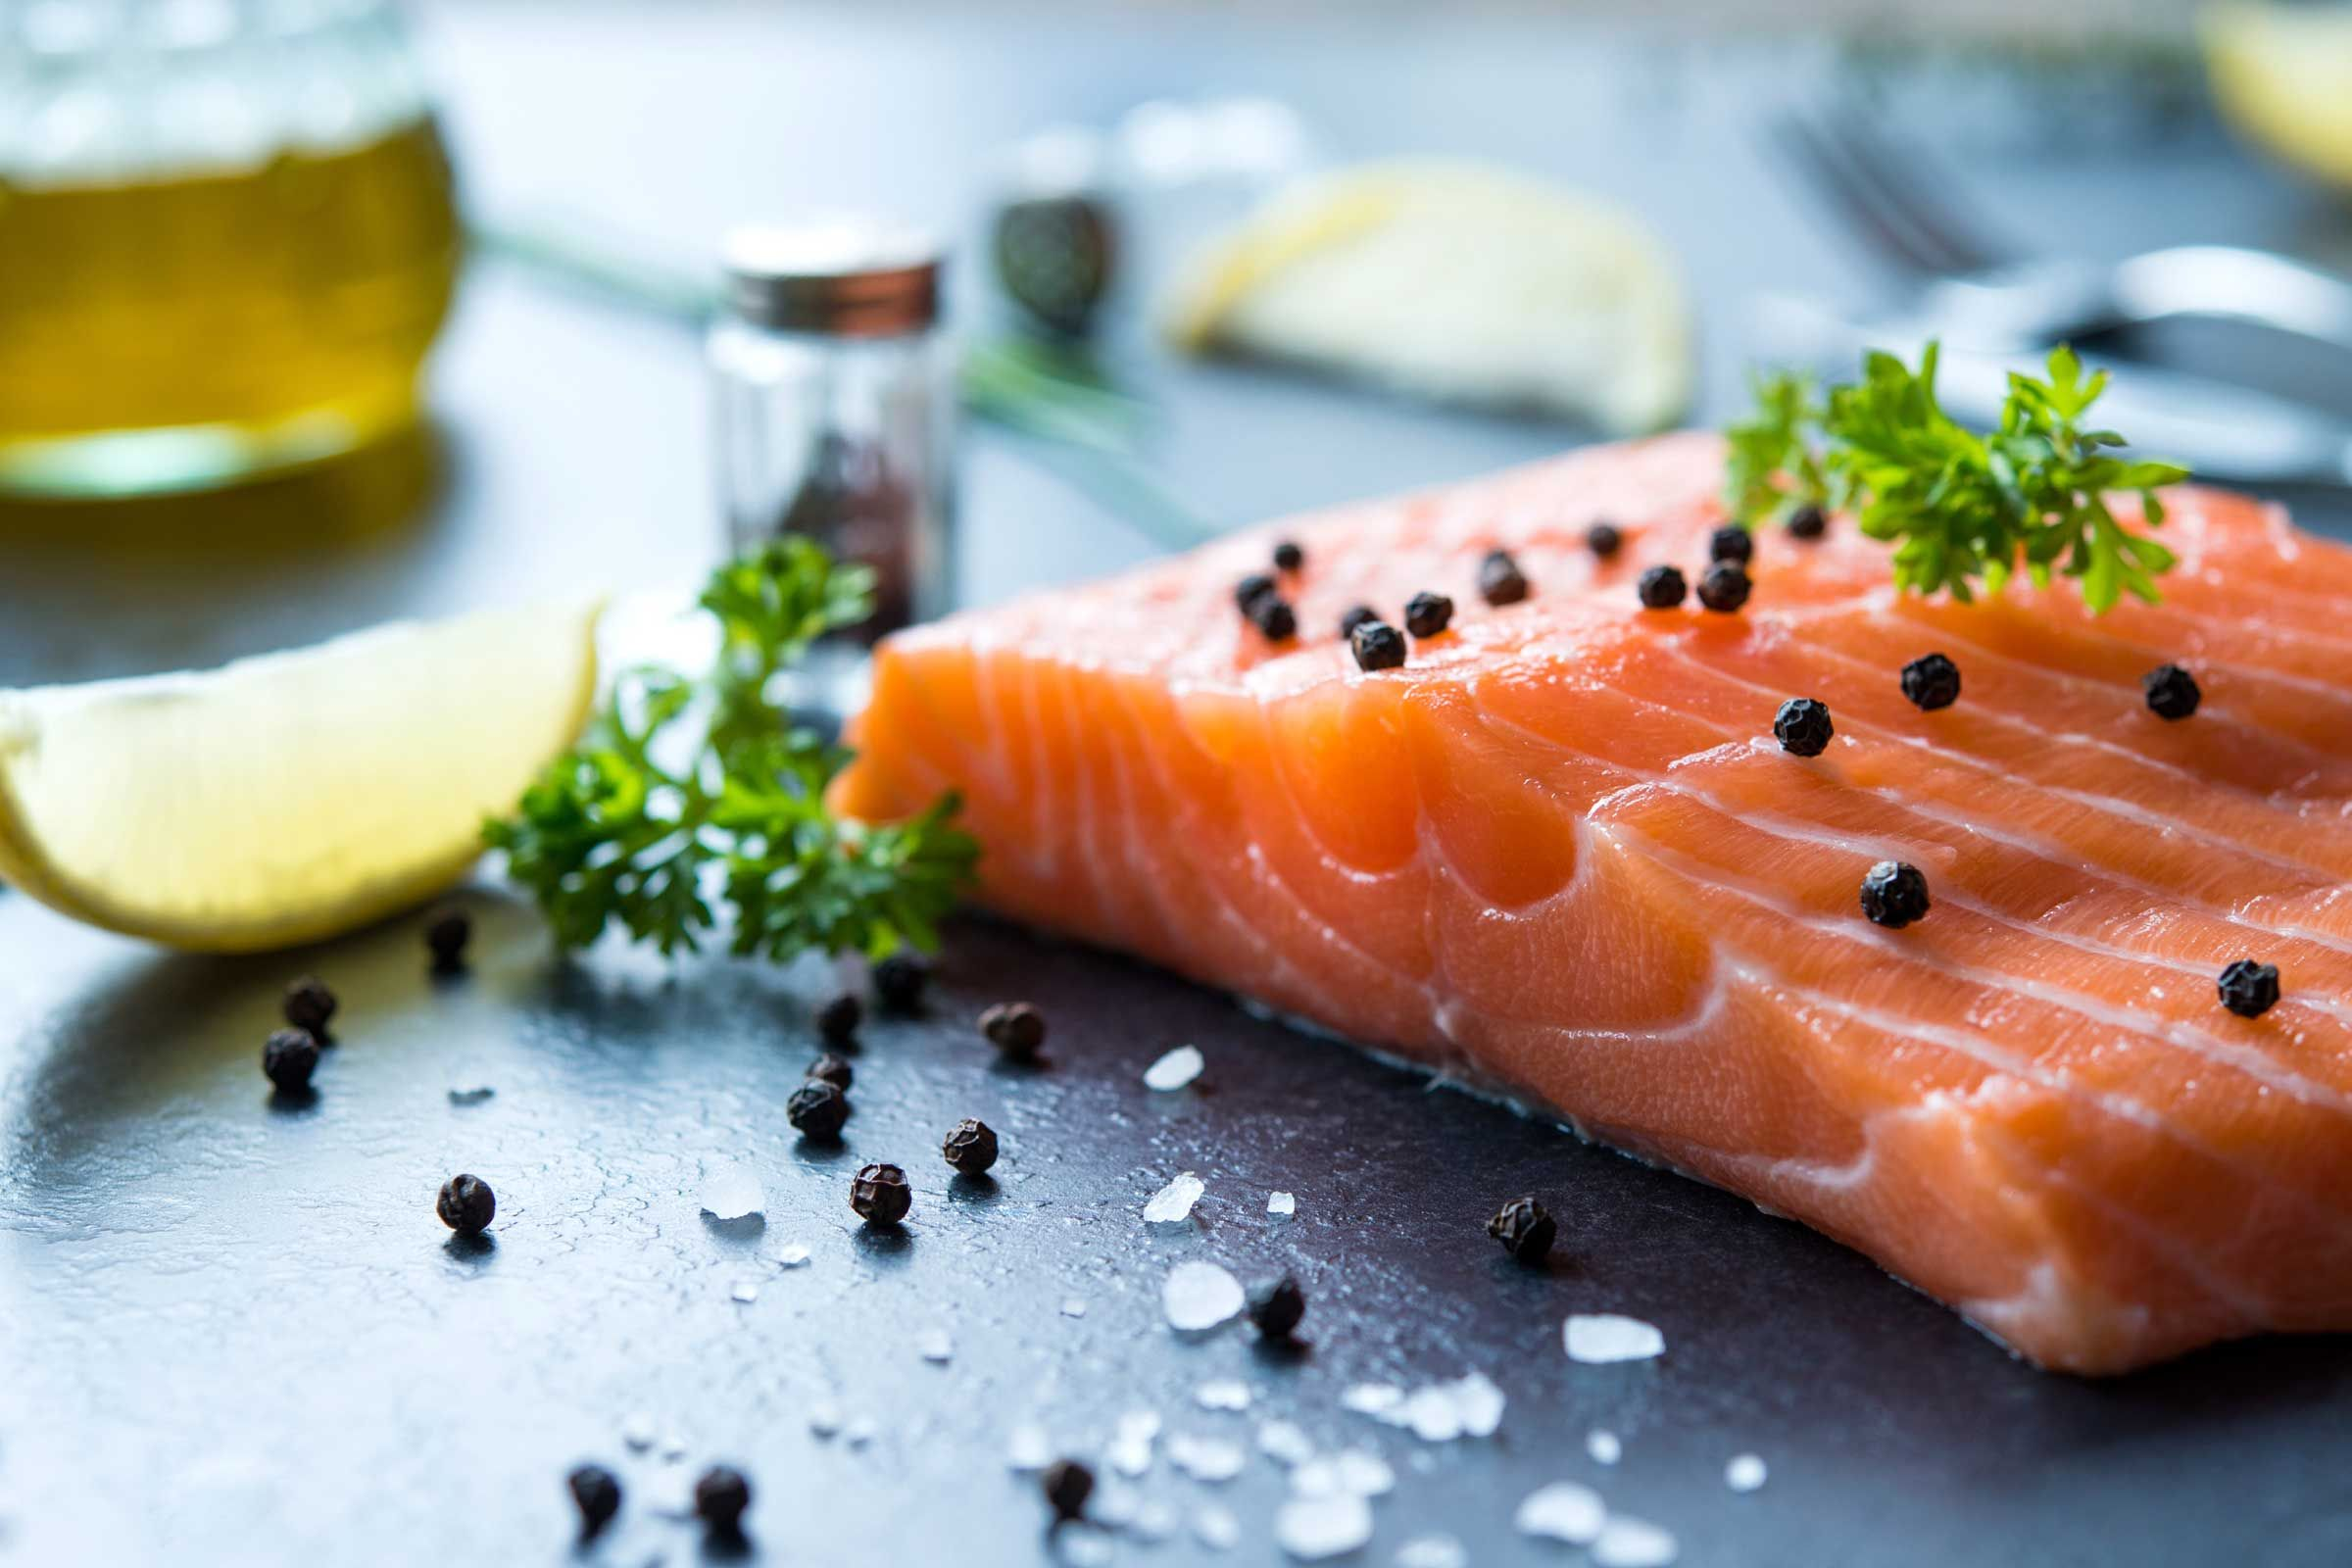 how to remove skin from salmon while cooking